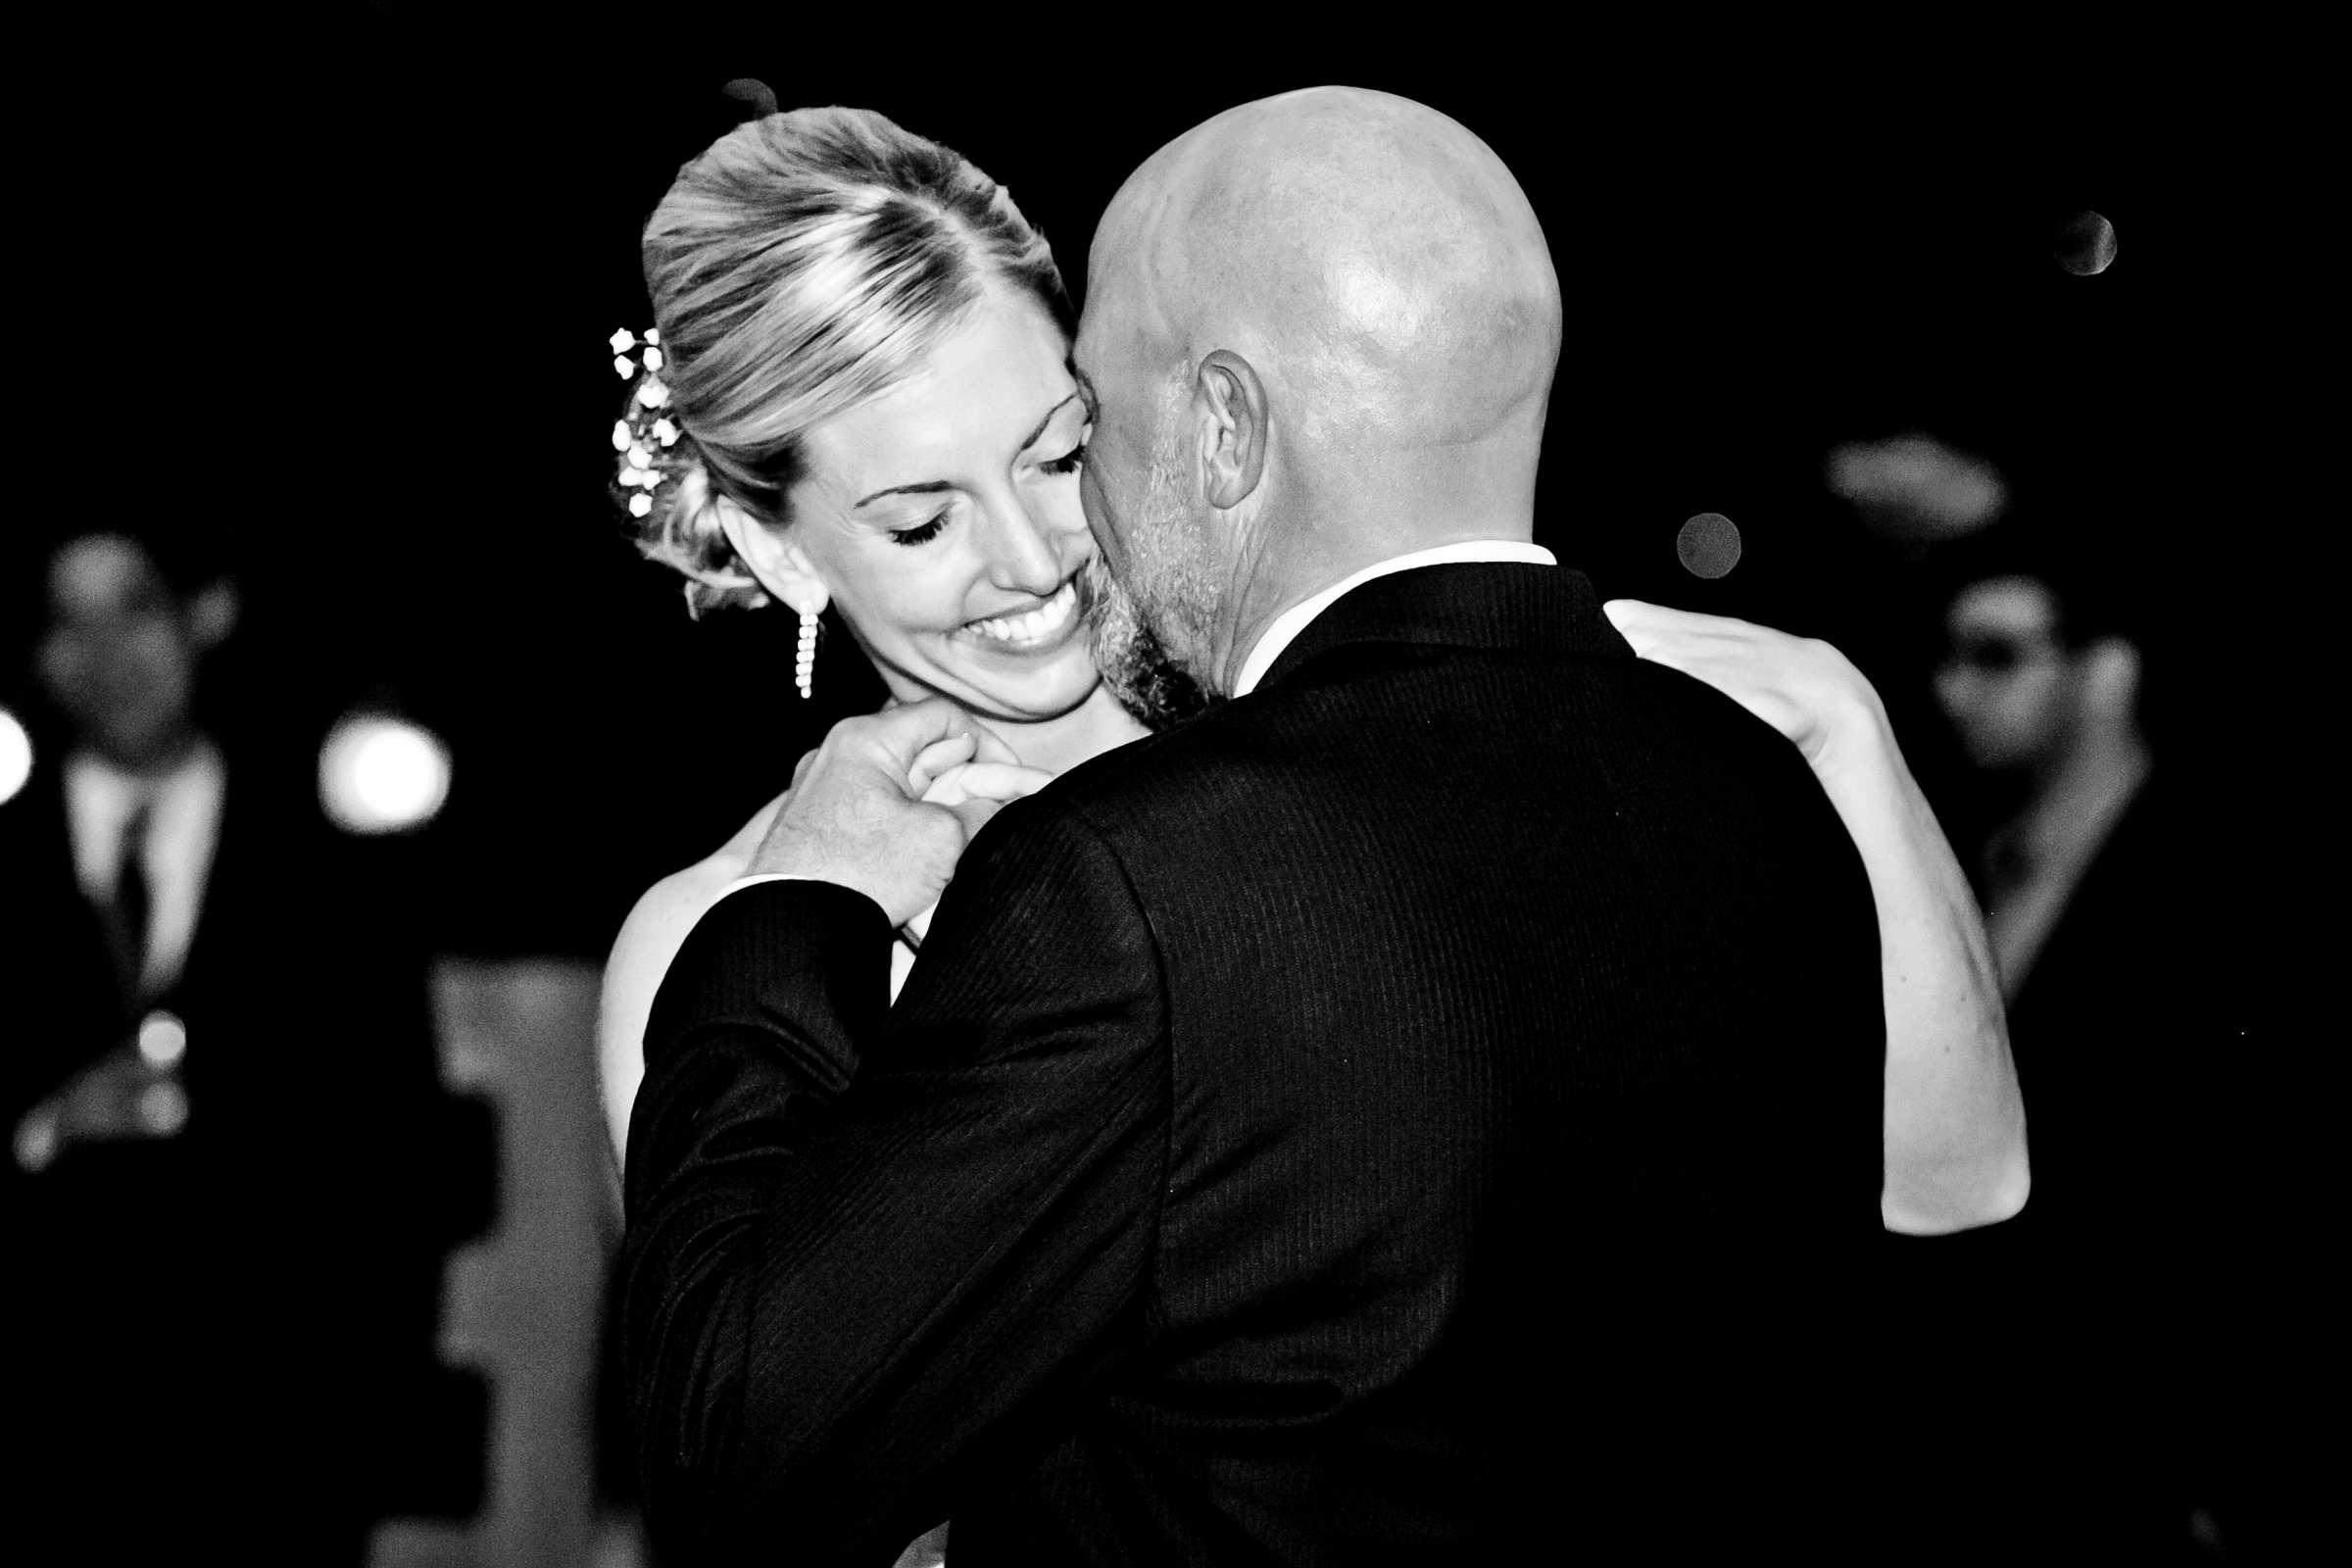 Holman Ranch Wedding, Kaley and Jason Wedding Photo #356280 by True Photography